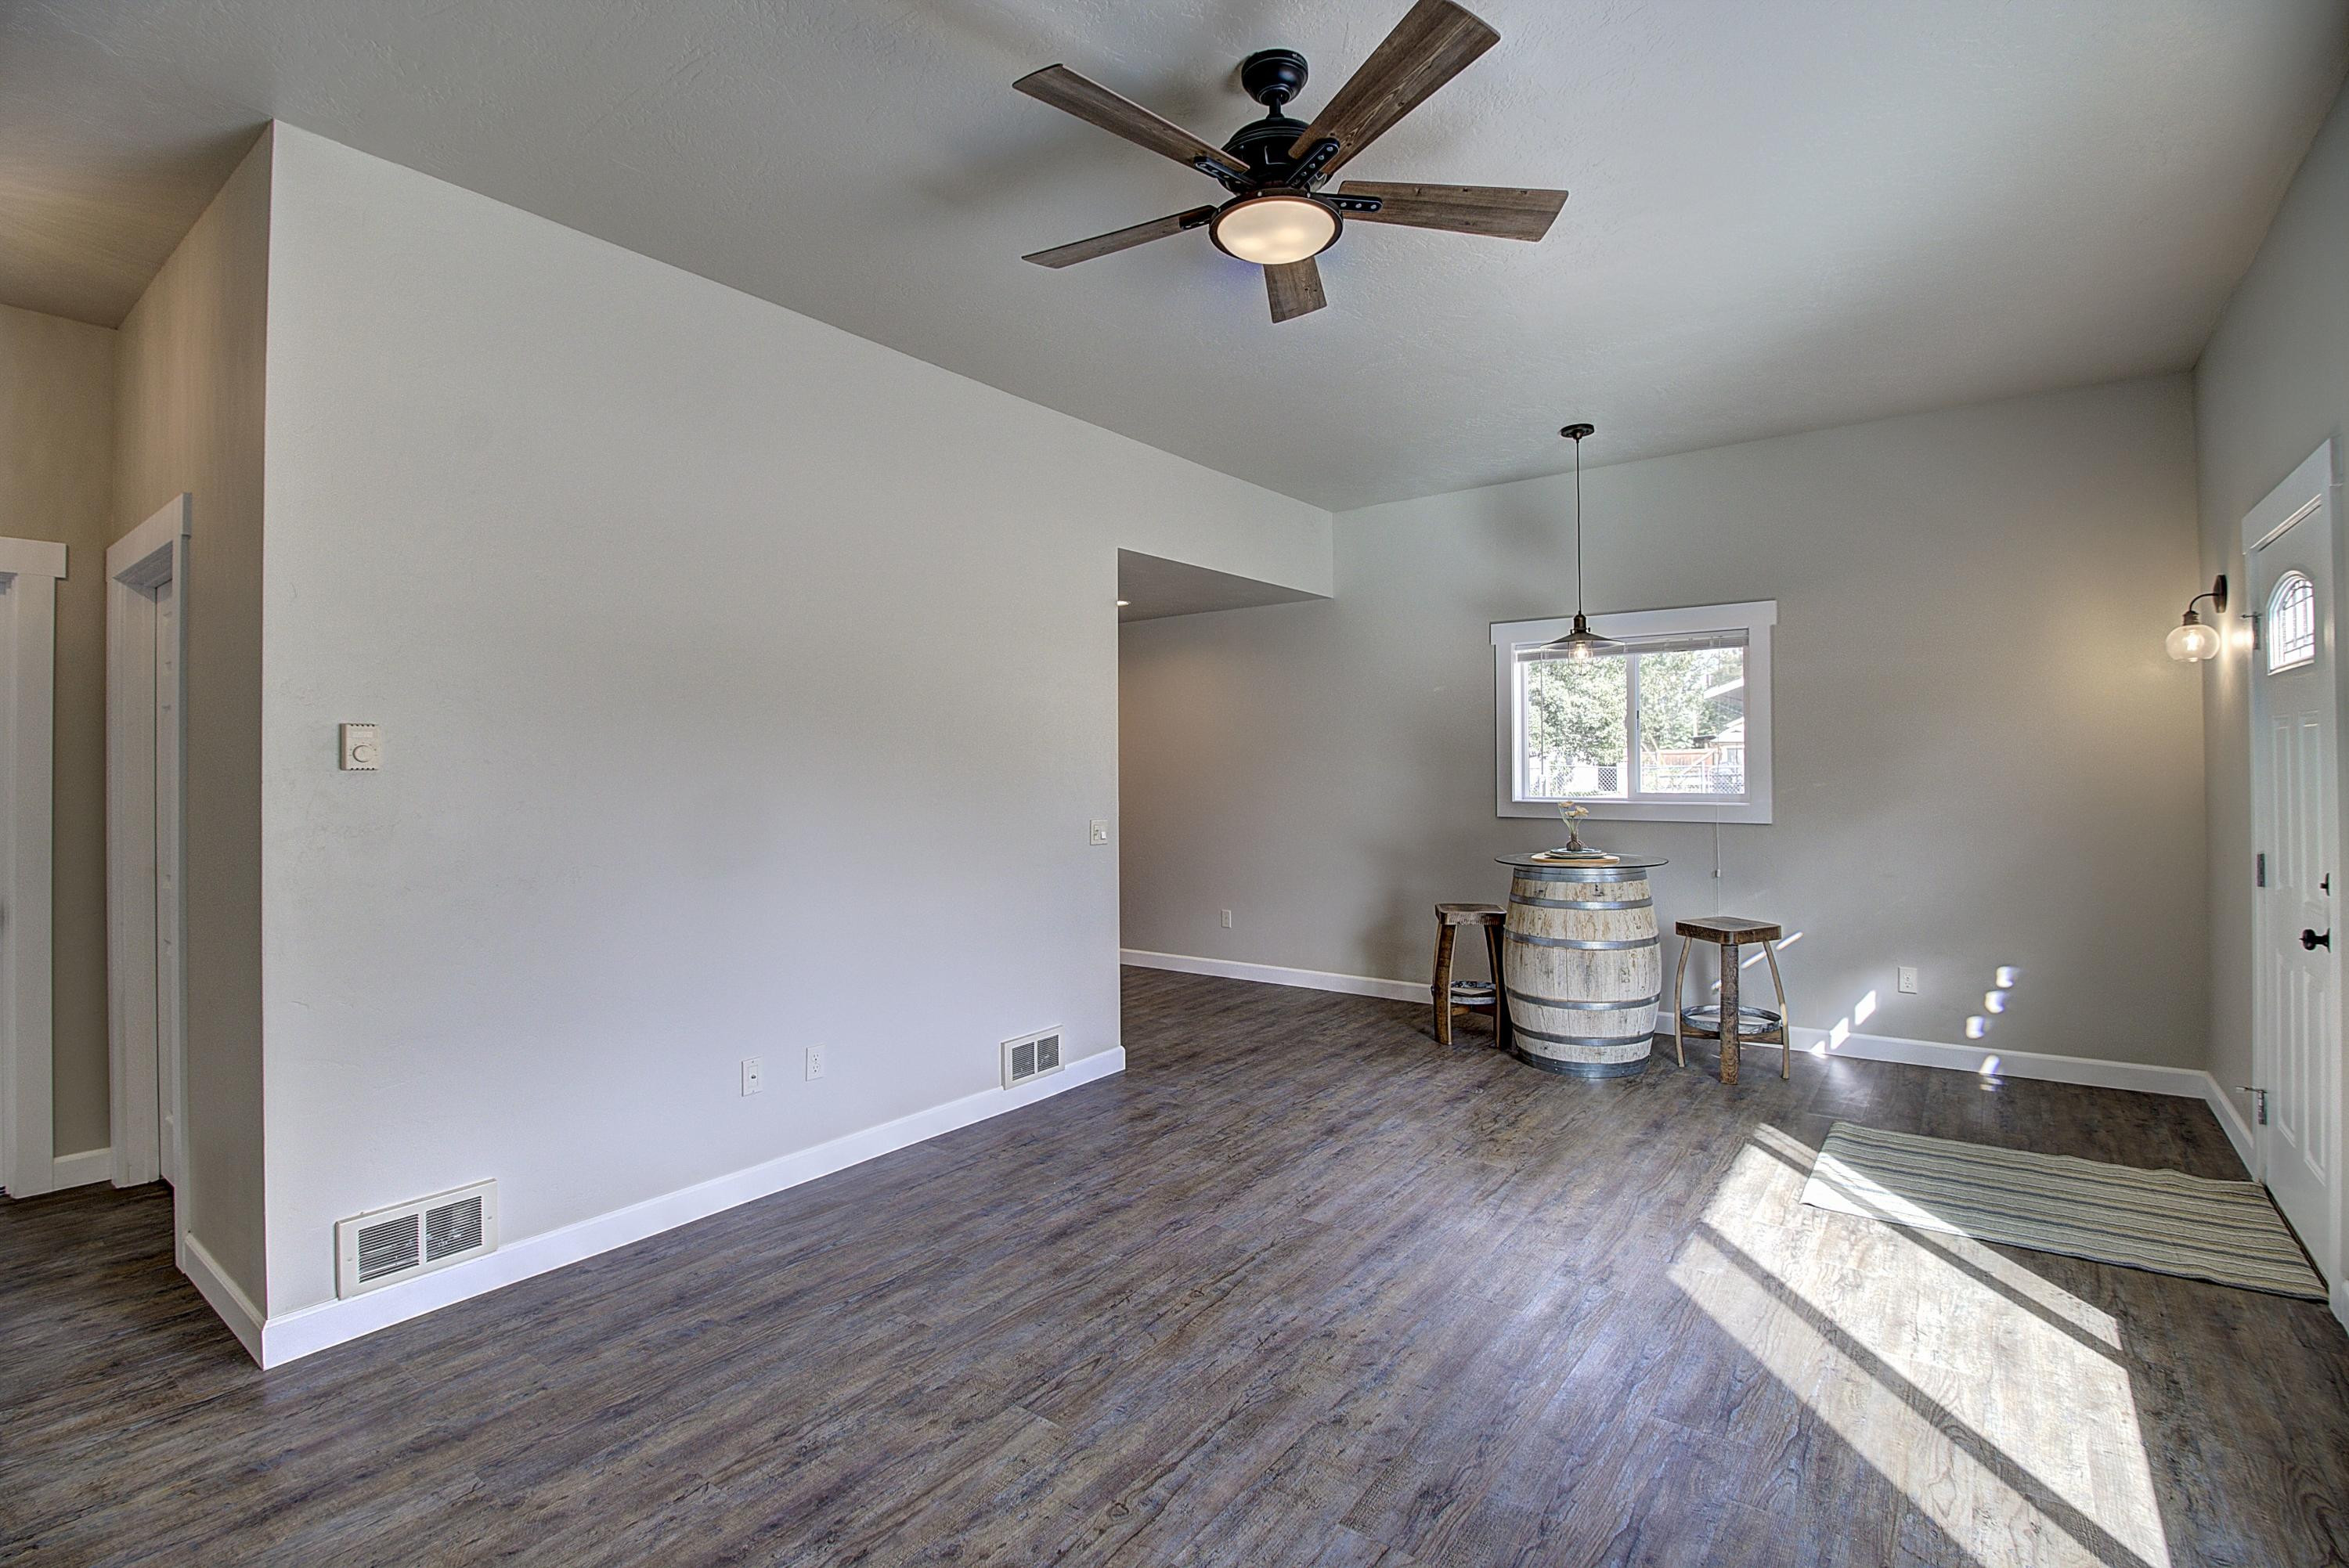 hardwood flooring kalispell of home for sale at 66 70 tahoe drive in kalispell montana for with regard to iy8a2965 66 67 68 69 70 71